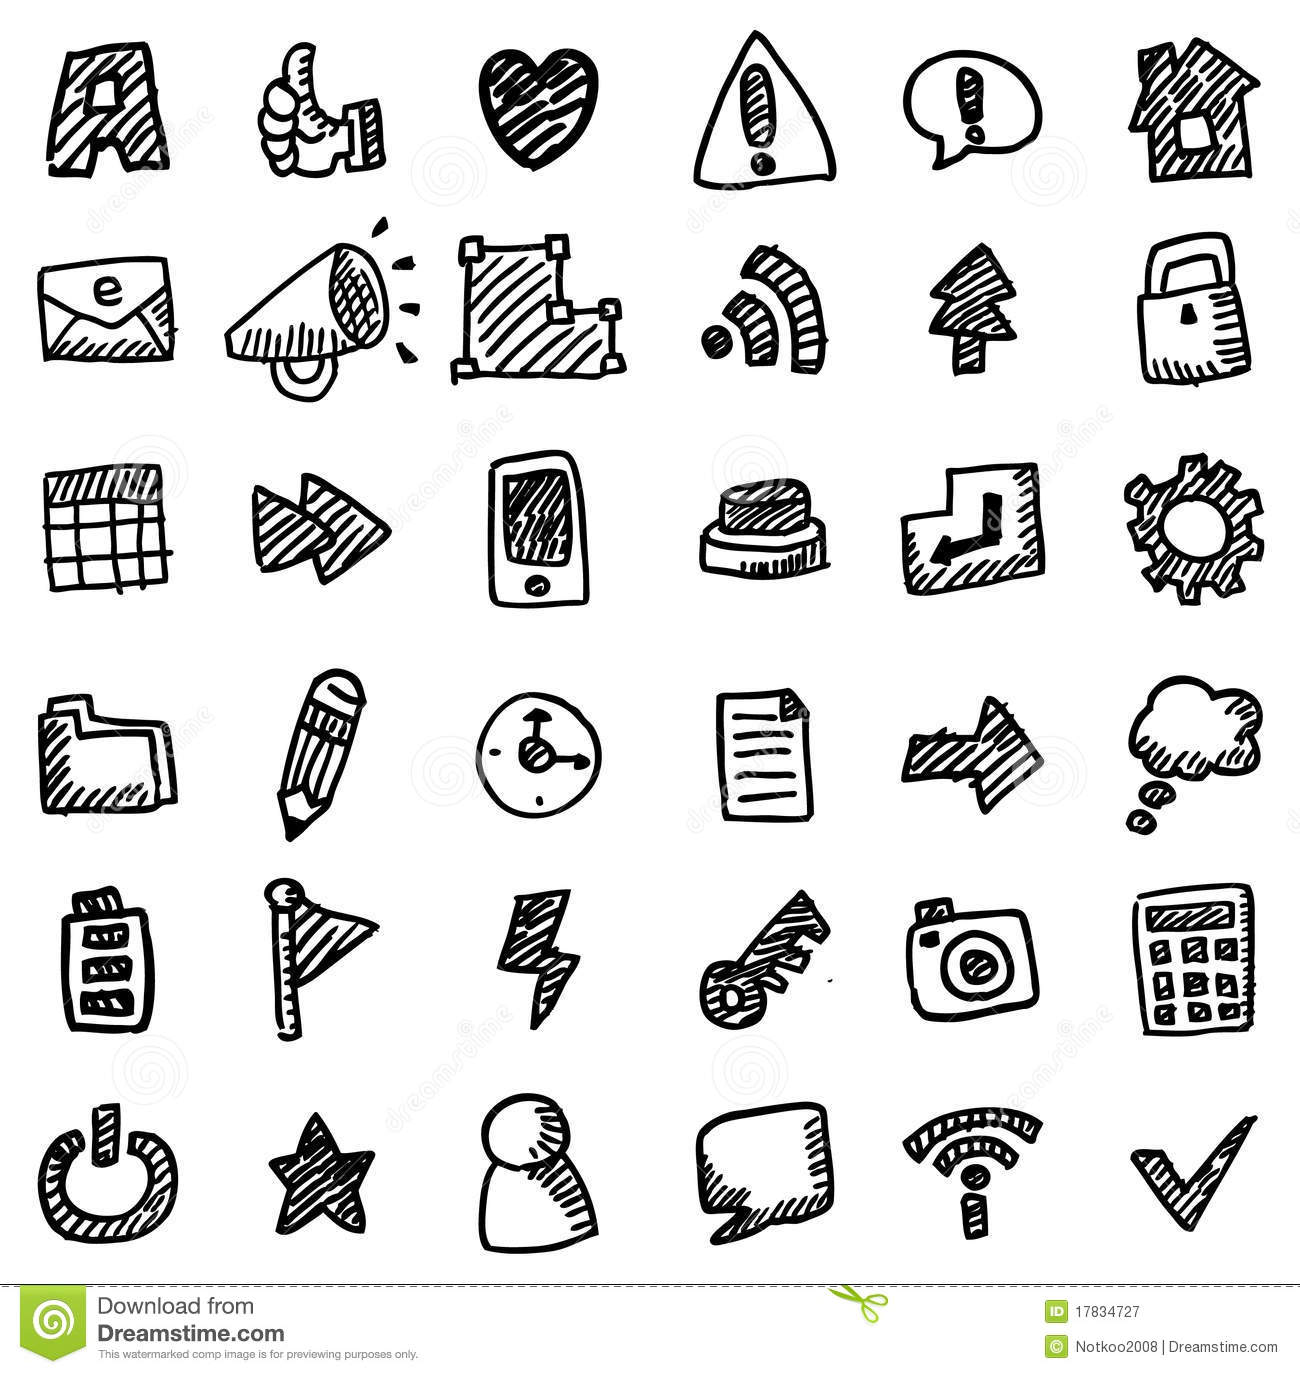 Hand Drawing Line Icons : Hand draw web icon royalty free stock photography image